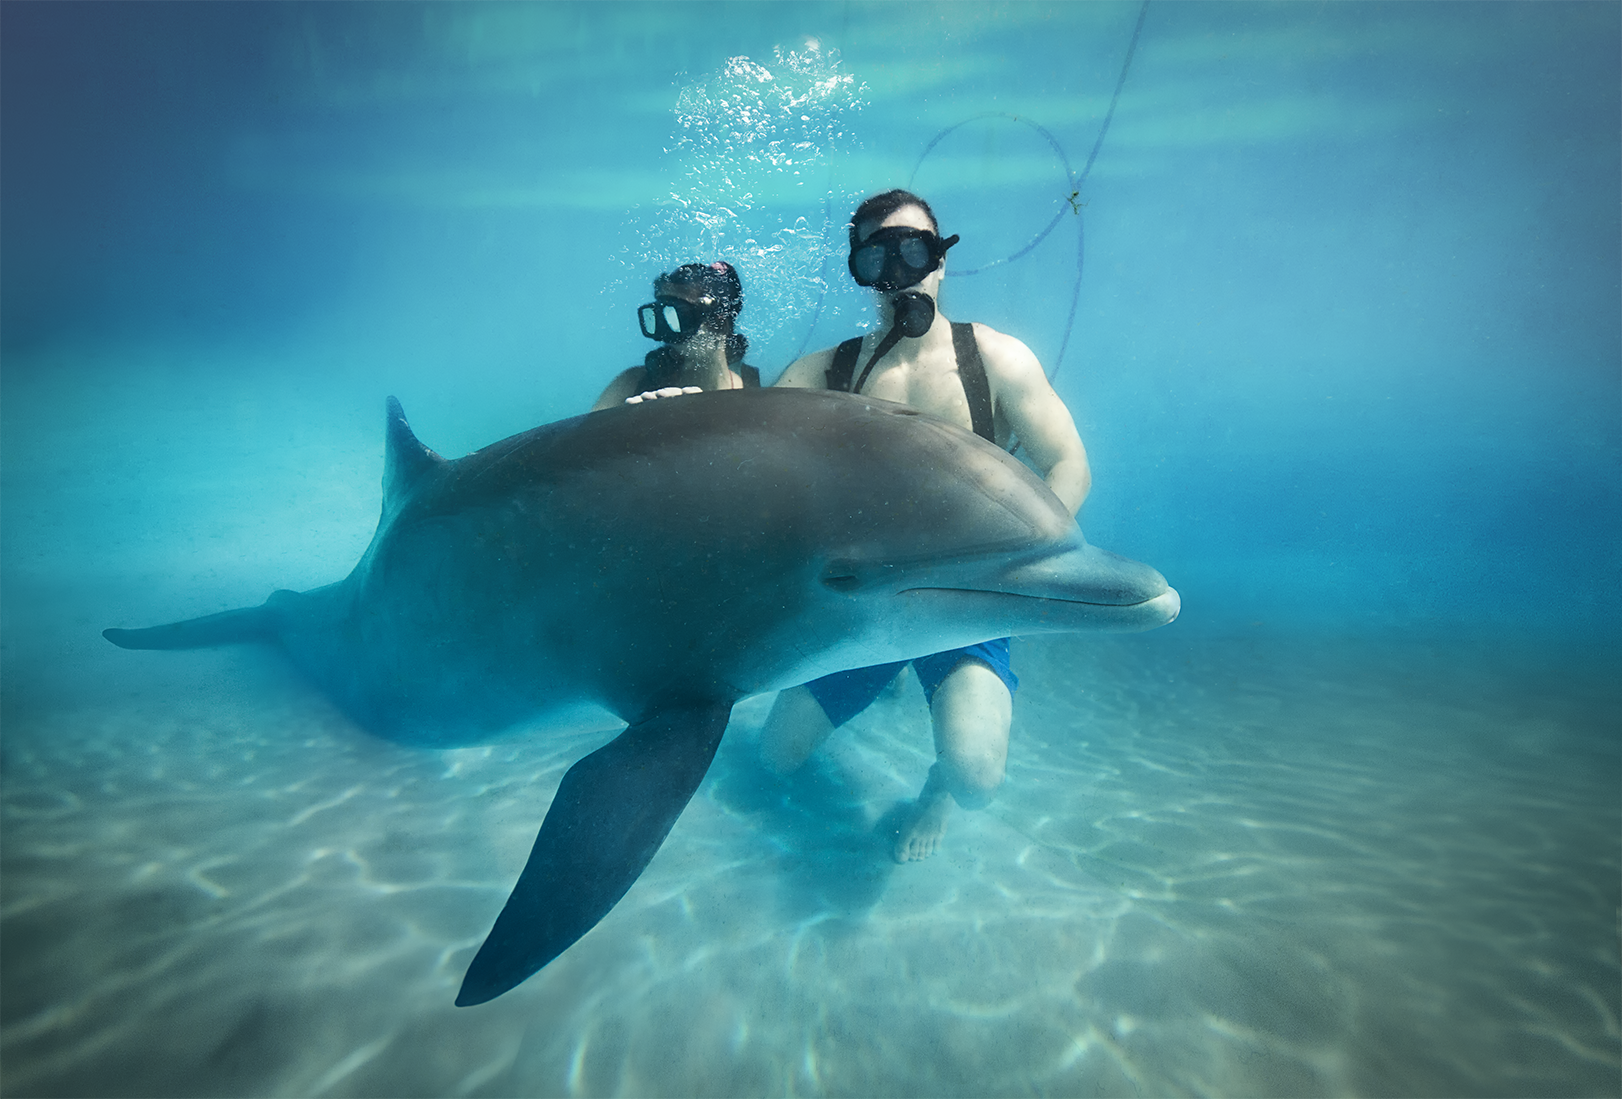 Swim with dolphins, perfect family plan